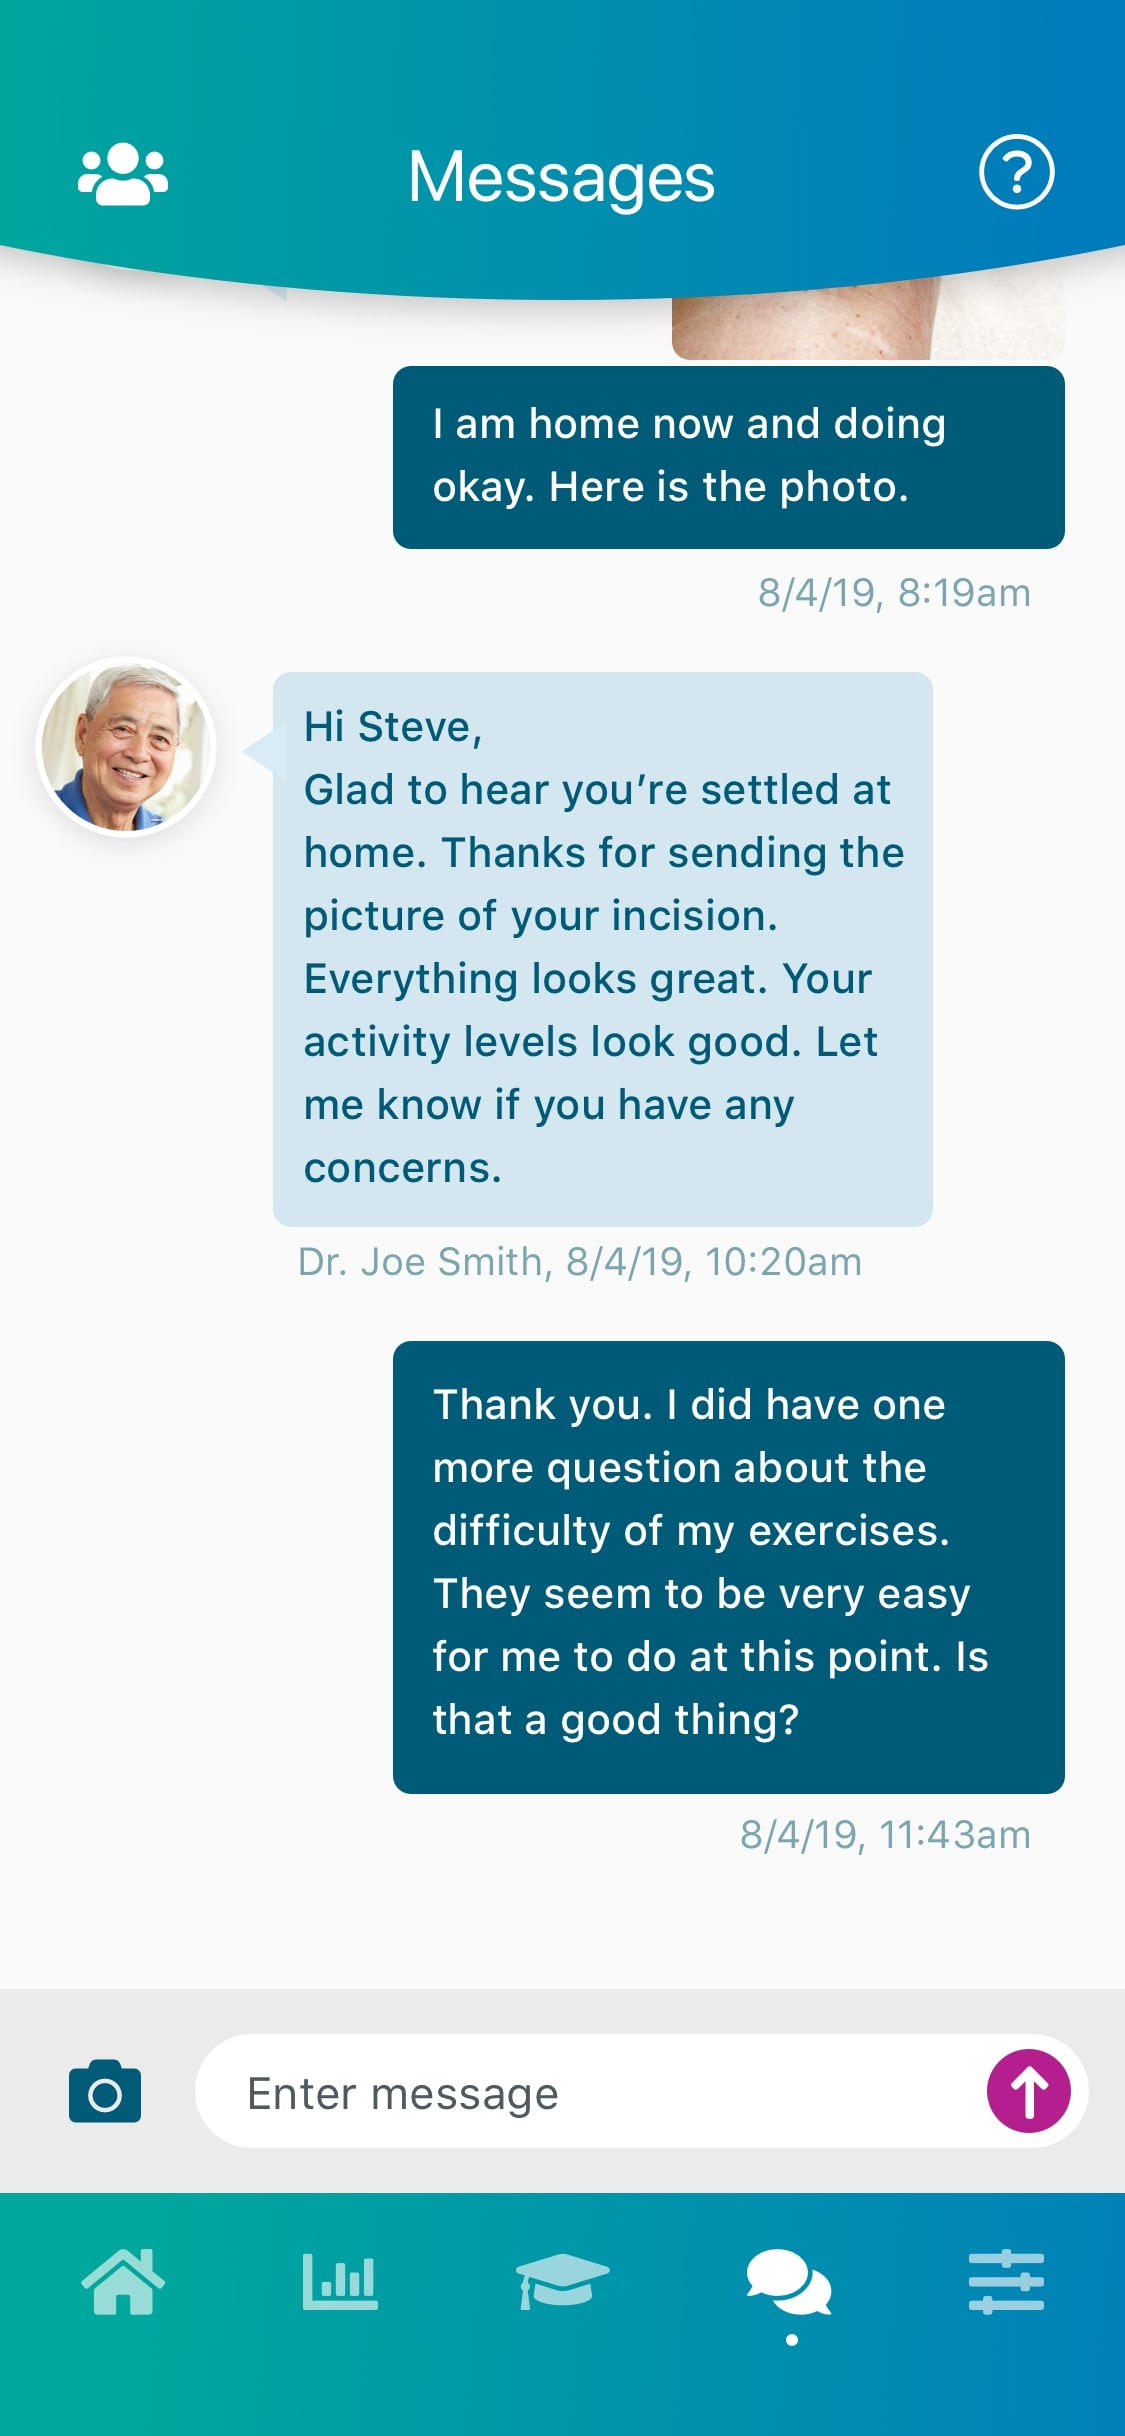 Zimmer & Apple Watch Transform Joint Replacement Virtual Care w/ App New Features